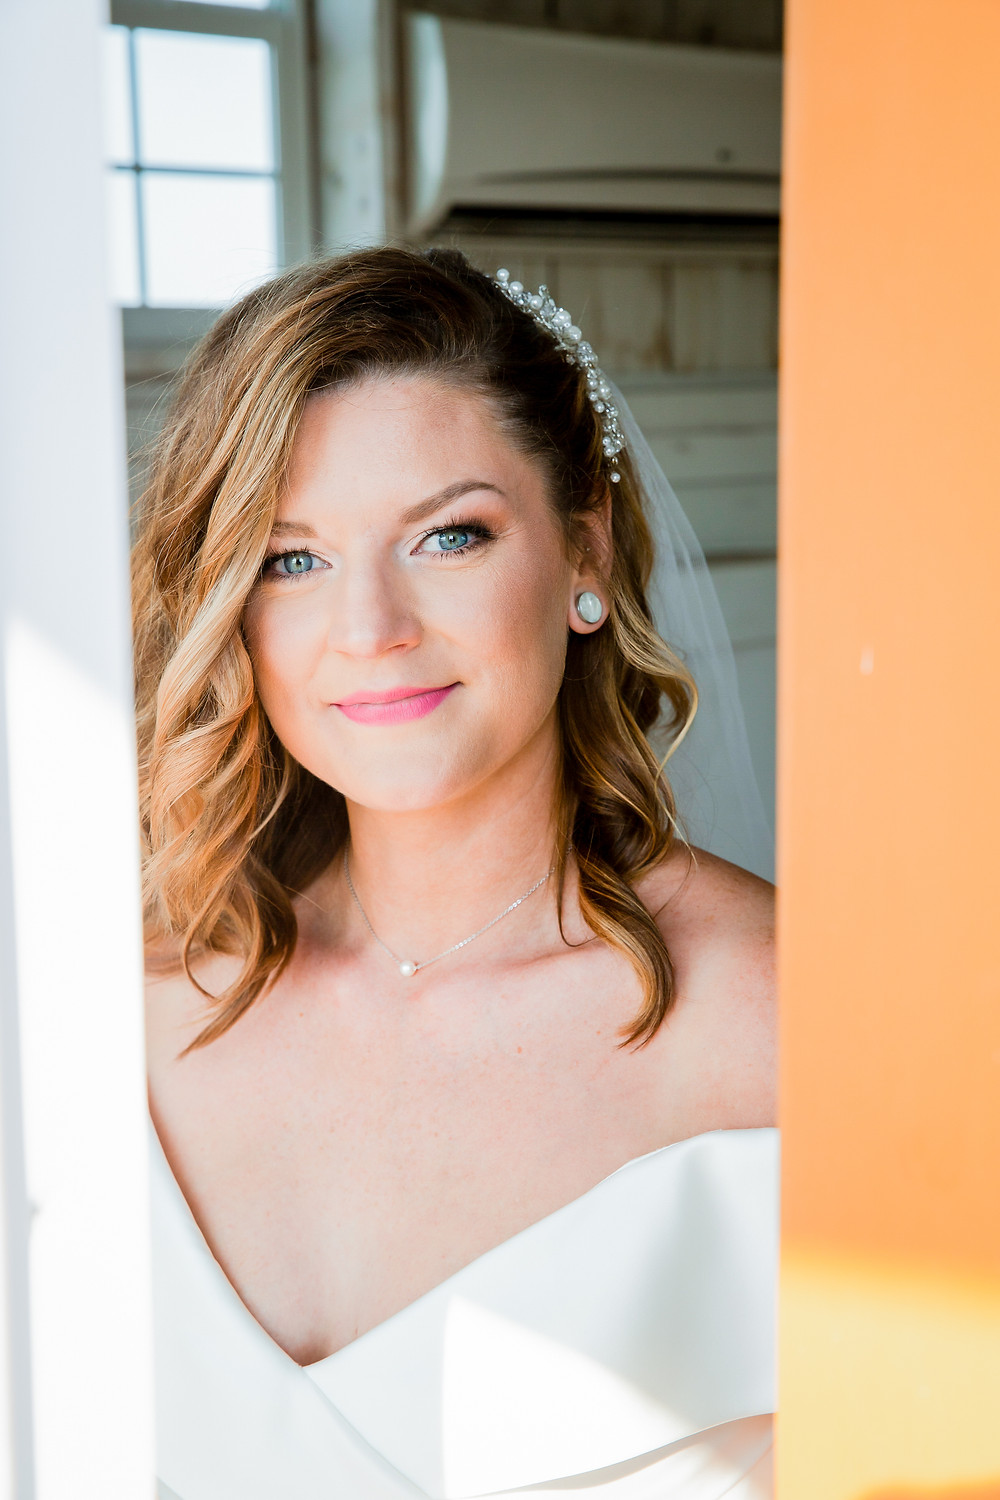 Portrait of bride in Dallas, Texas featured in wedding photography blog article on average costs of wedding photos.